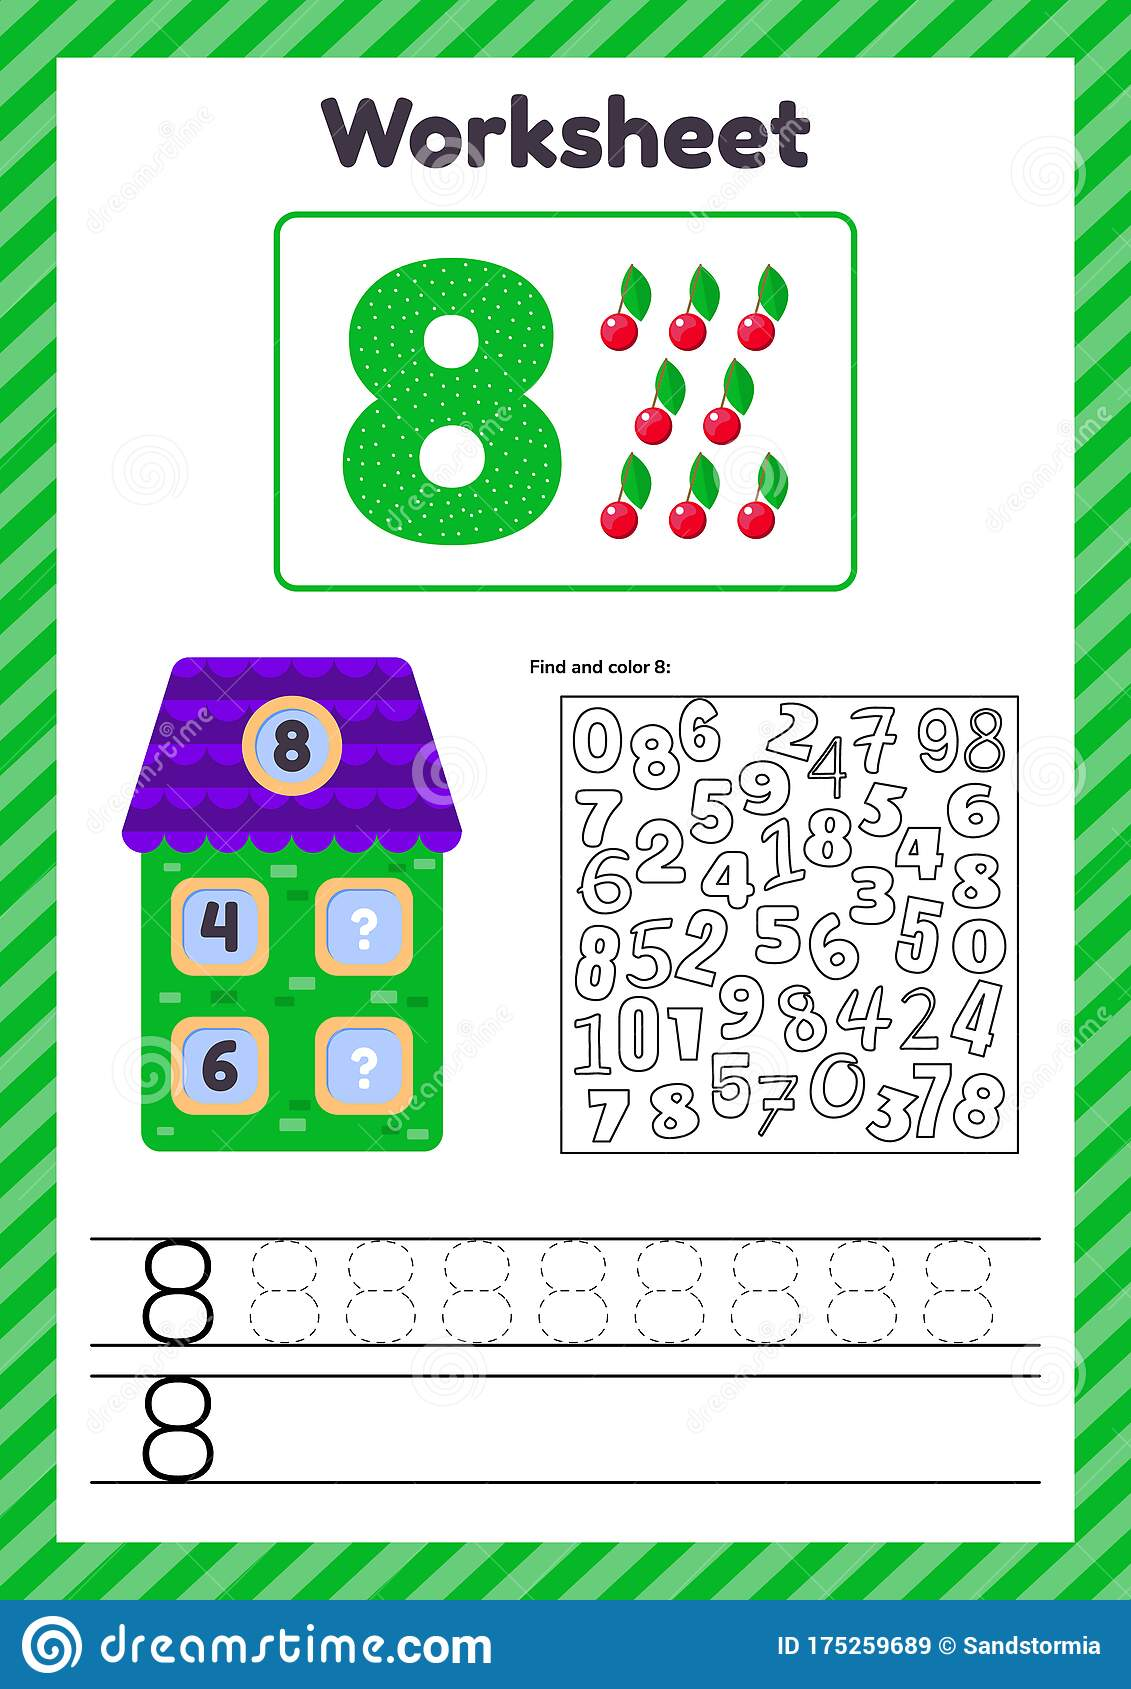 hight resolution of Worksheet Count For Kids. House. Number Bonds. Trace Line. The Study Of  Mathematics For Children Of Kindergarten Stock Vector - Illustration of line